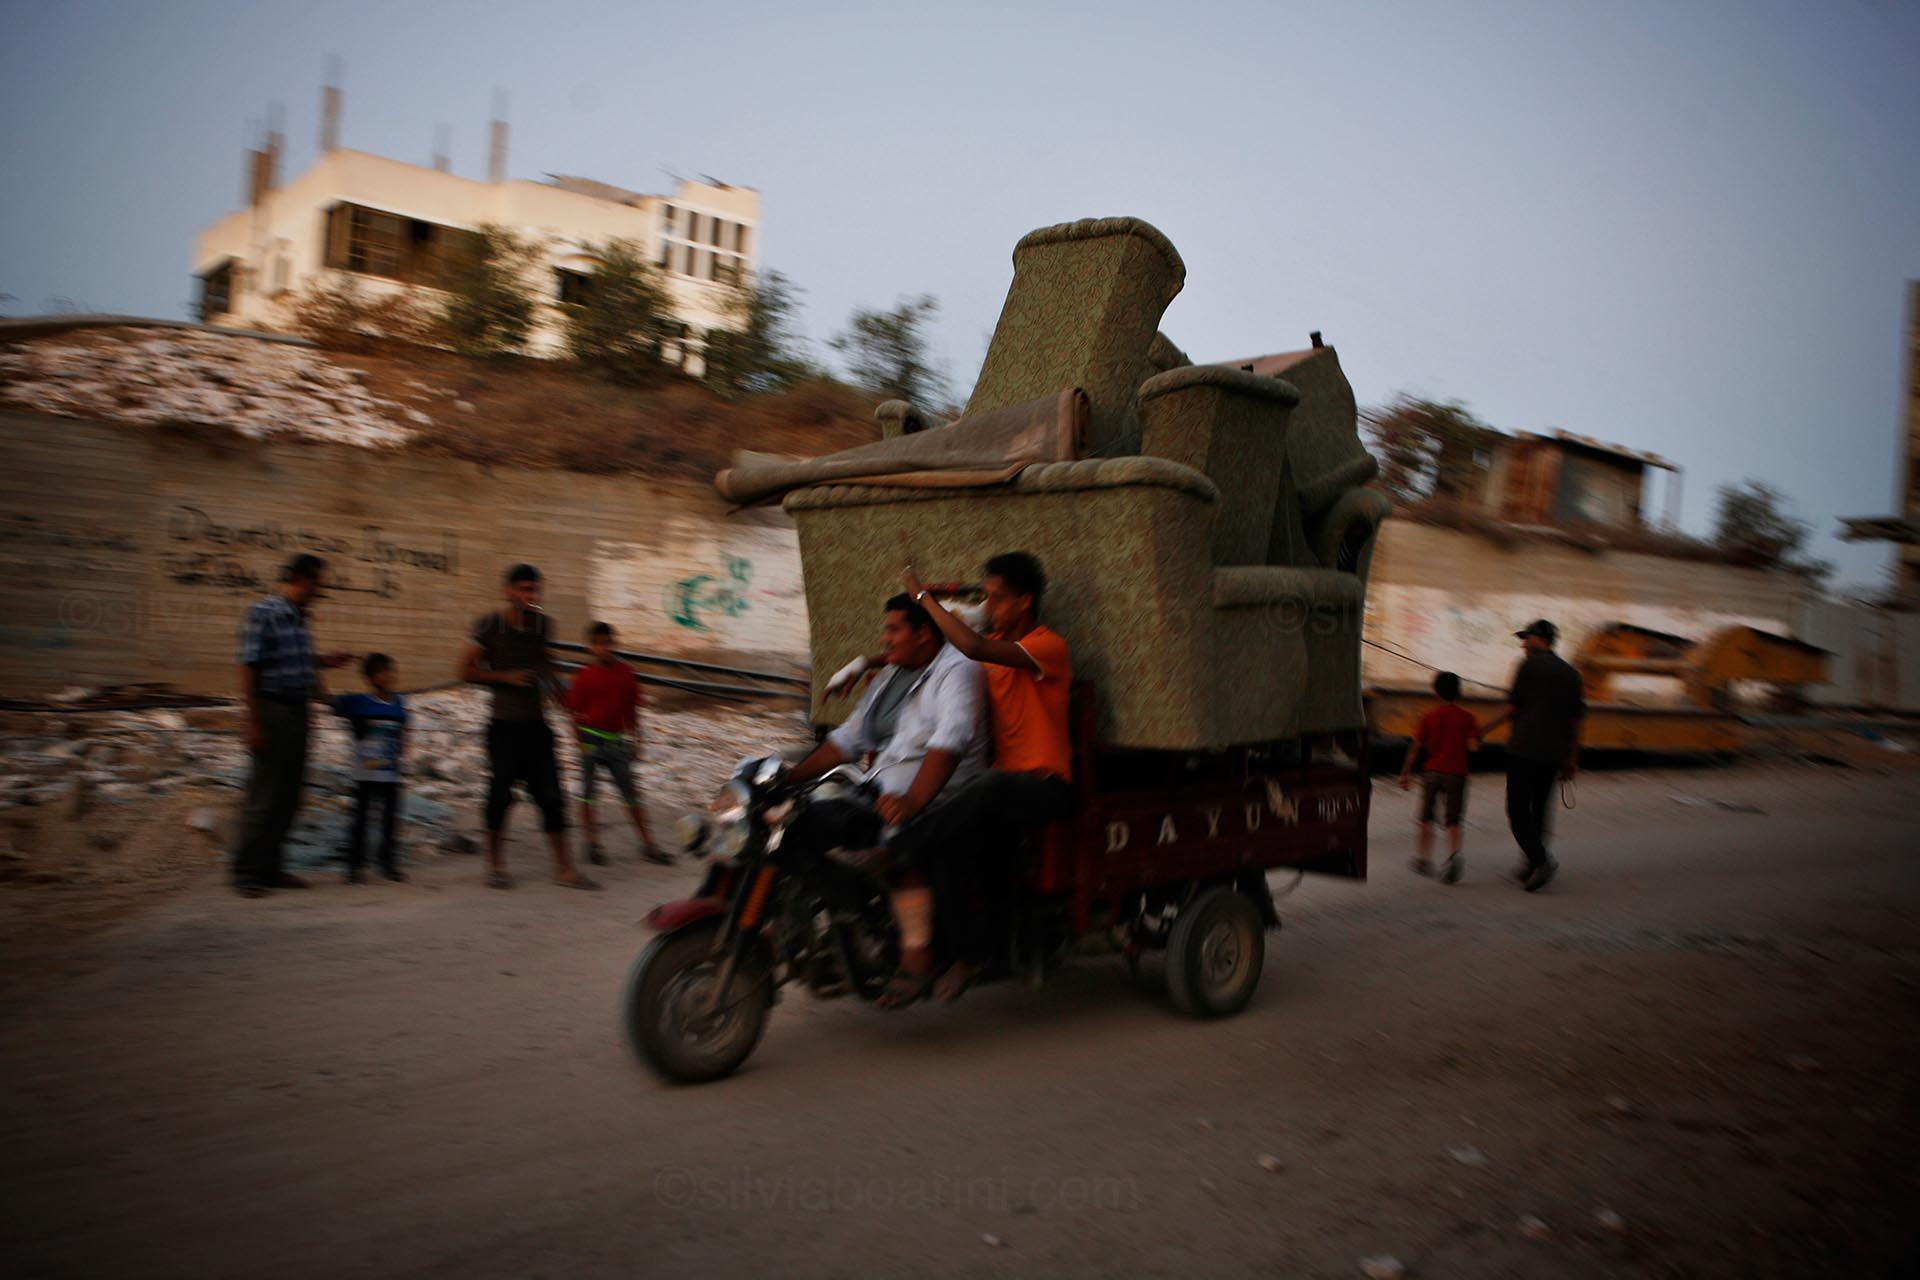 Shujayea, people recover belongings from the rubble of their homes. August 2014